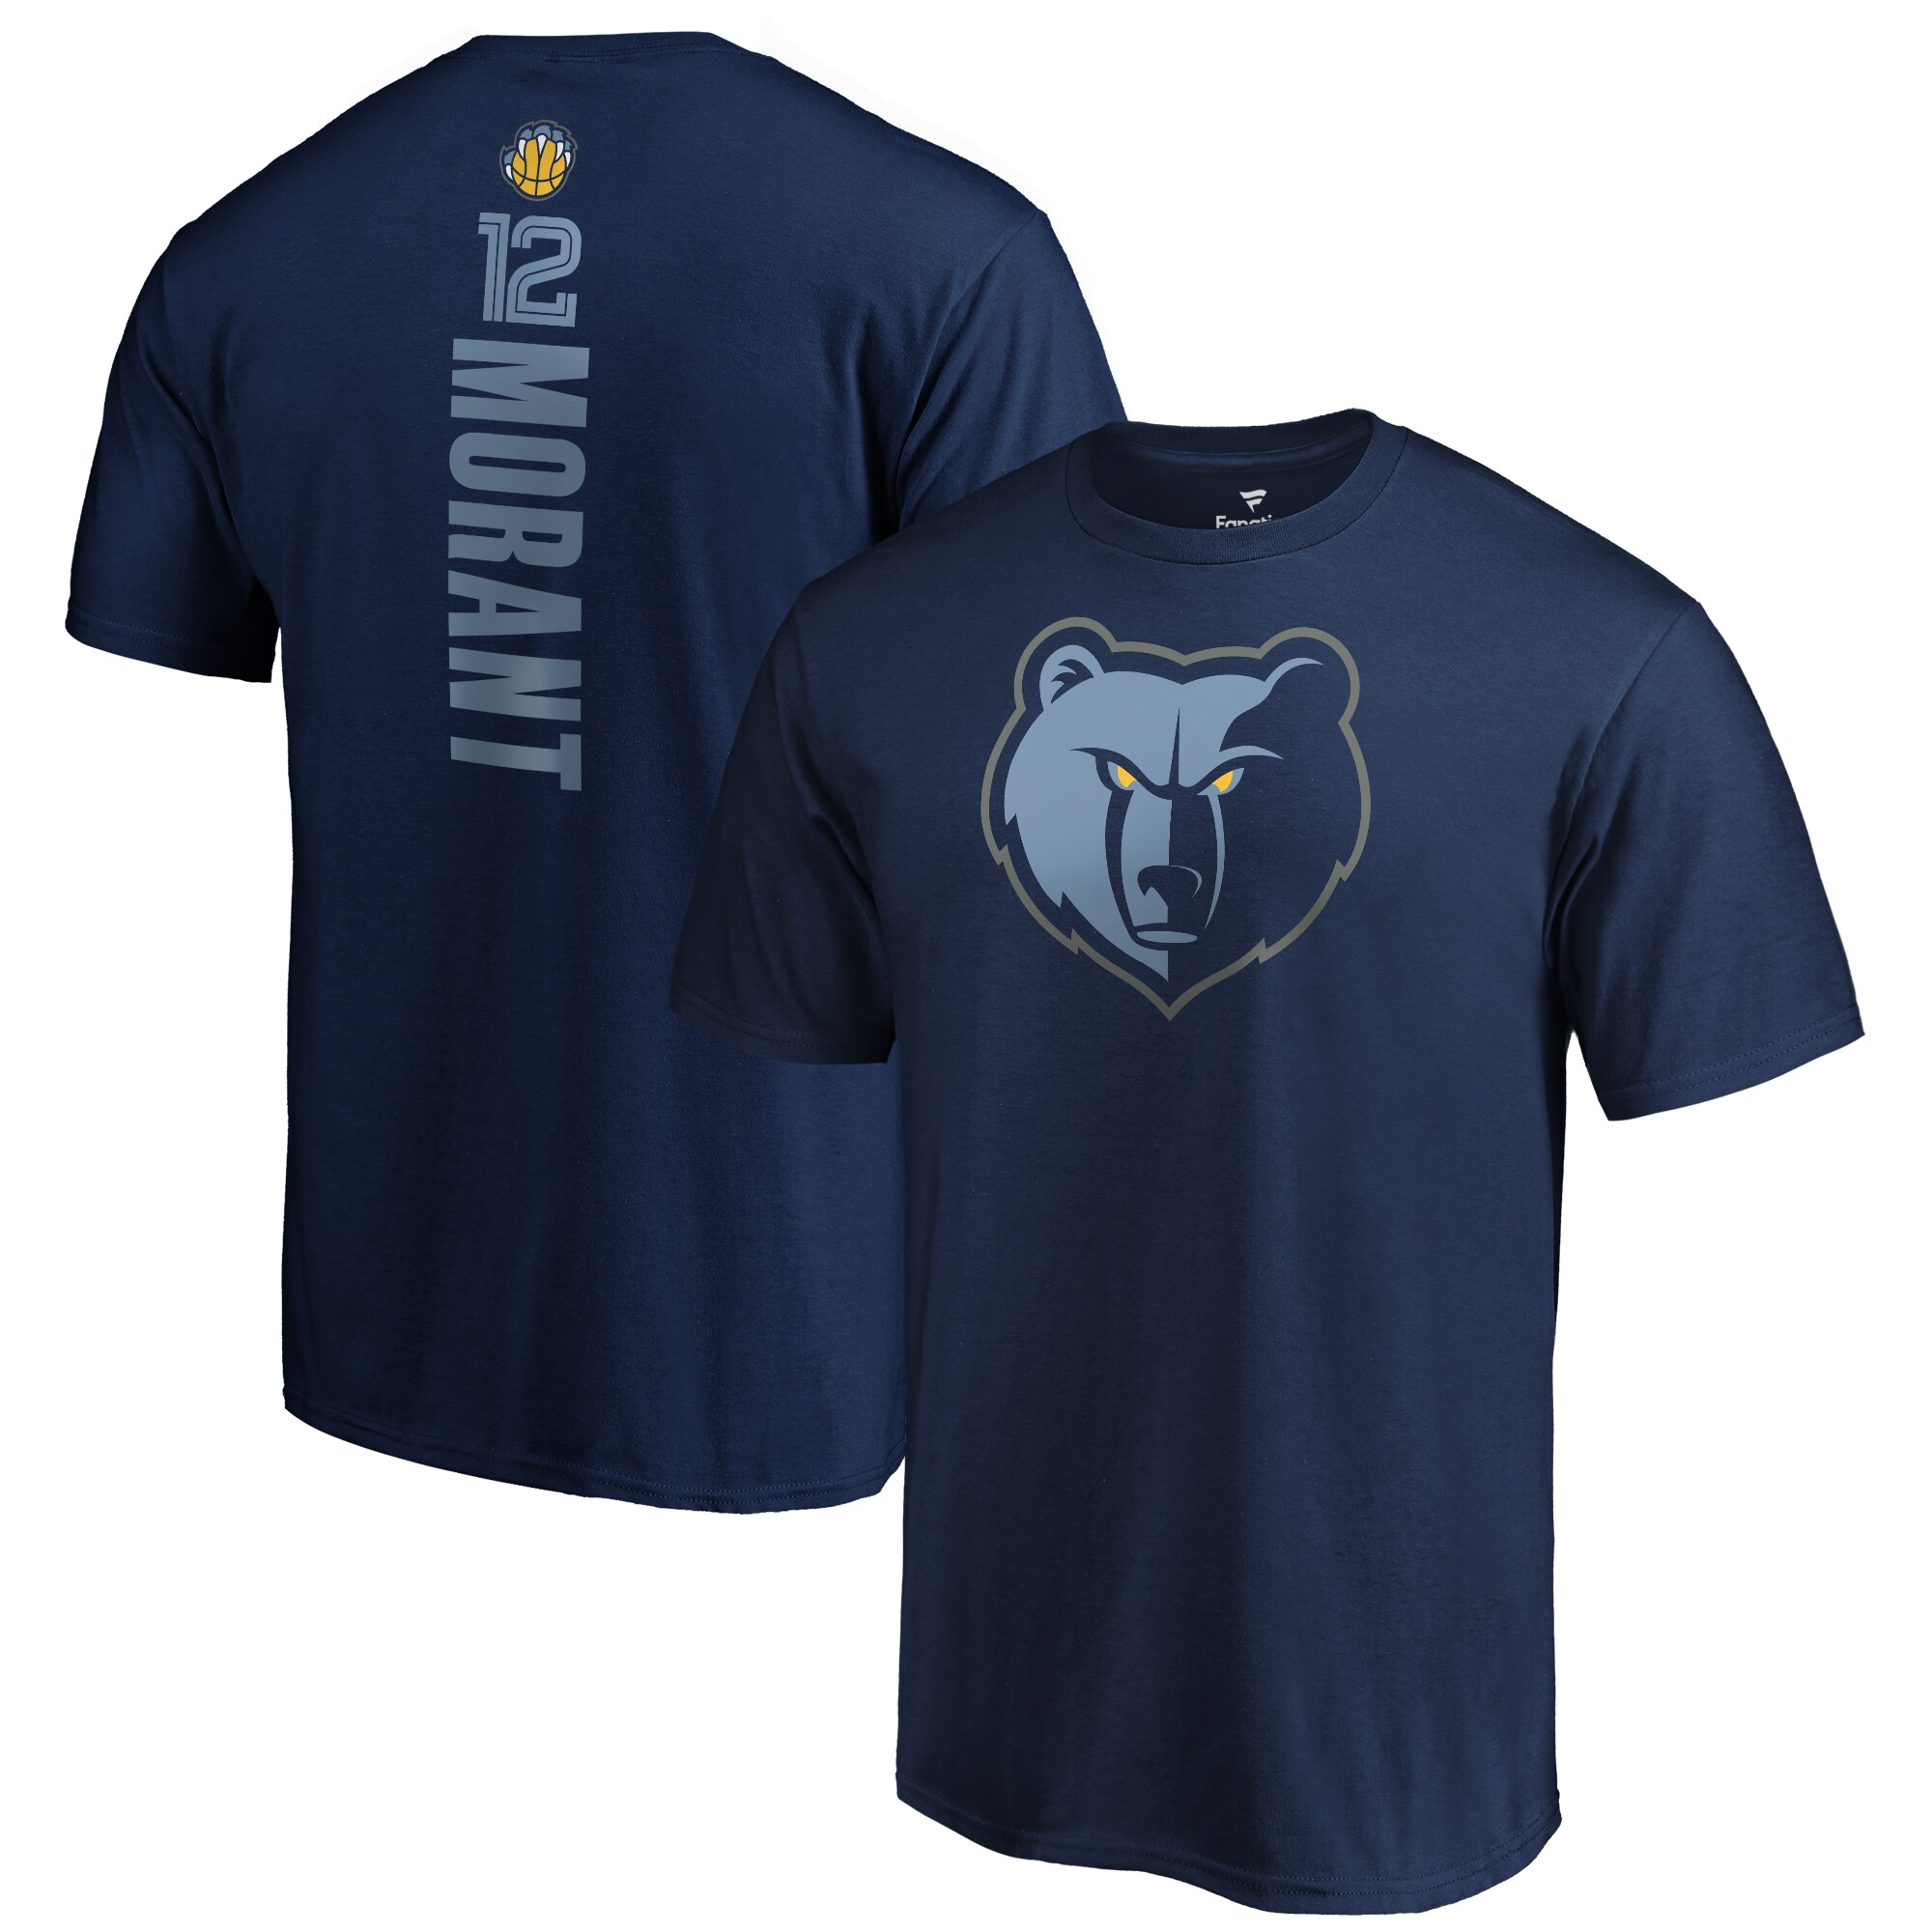 Ja Morant Memphis Grizzlies Fanatics Branded 2019 NBA Draft Playmaker Name & Number T-Shirt - Navy